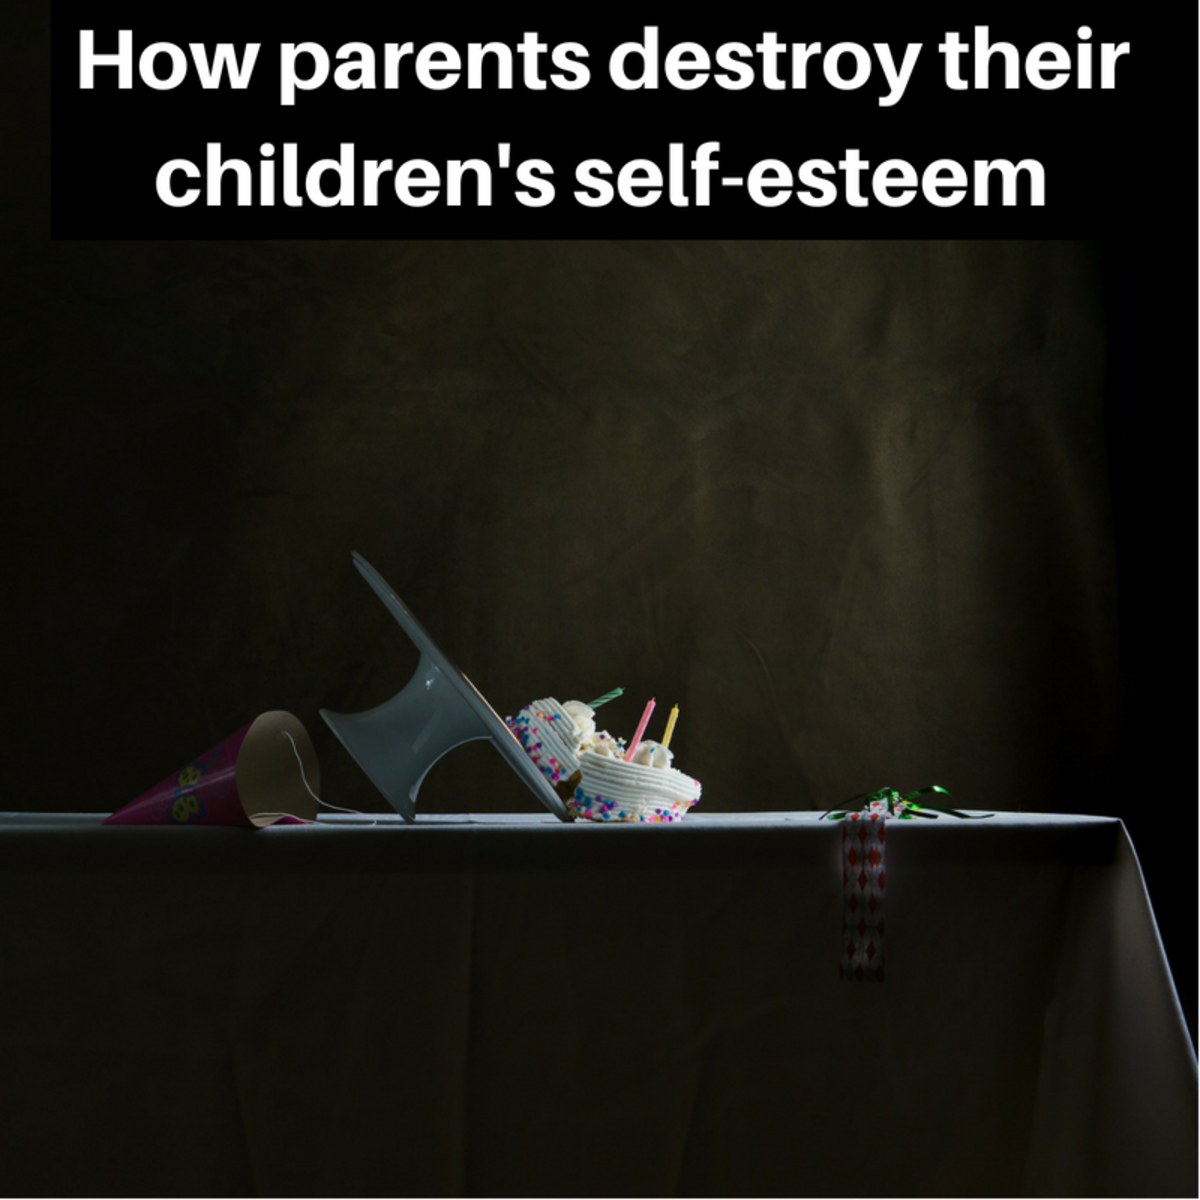 Ten Ways Parents Destroy Their Children's Self-Esteem